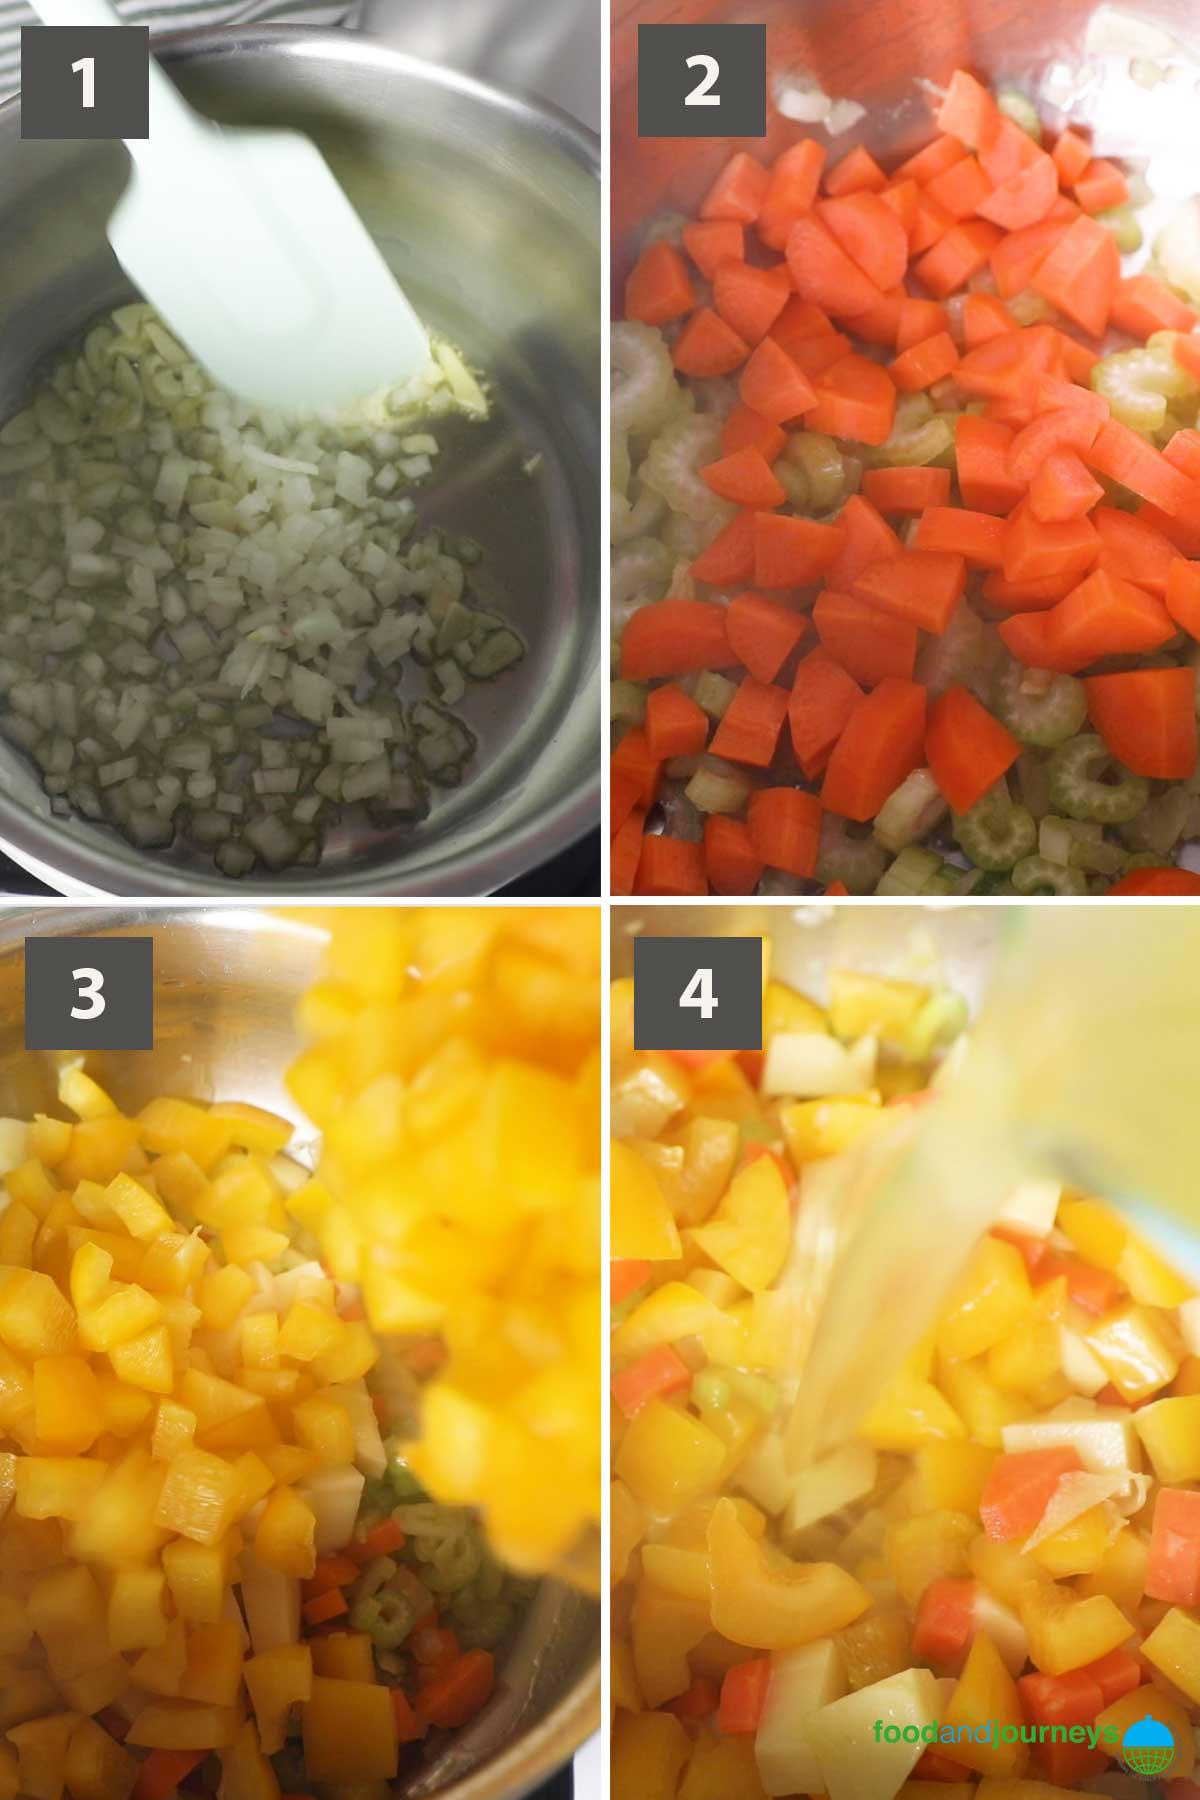 First updated part of a collage of images showing the step by step process on how to prepare yellow pepper soup.